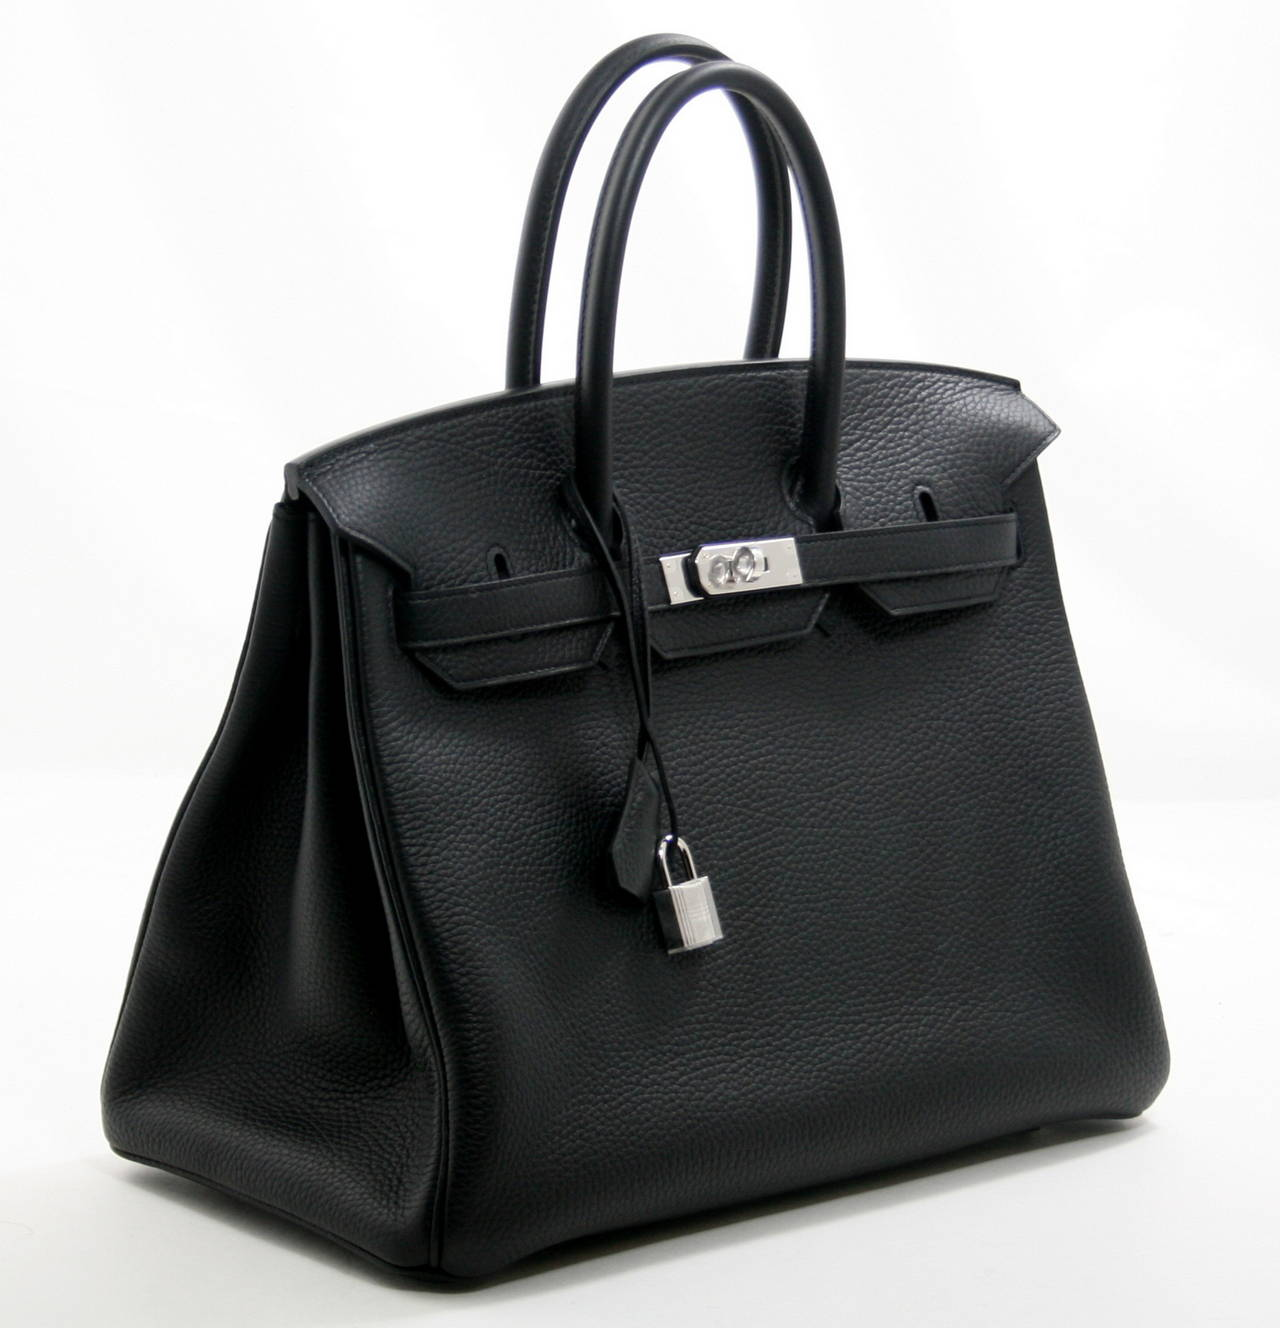 793ef4e7904 Hermes Birkin 35 Bag Togo Leather